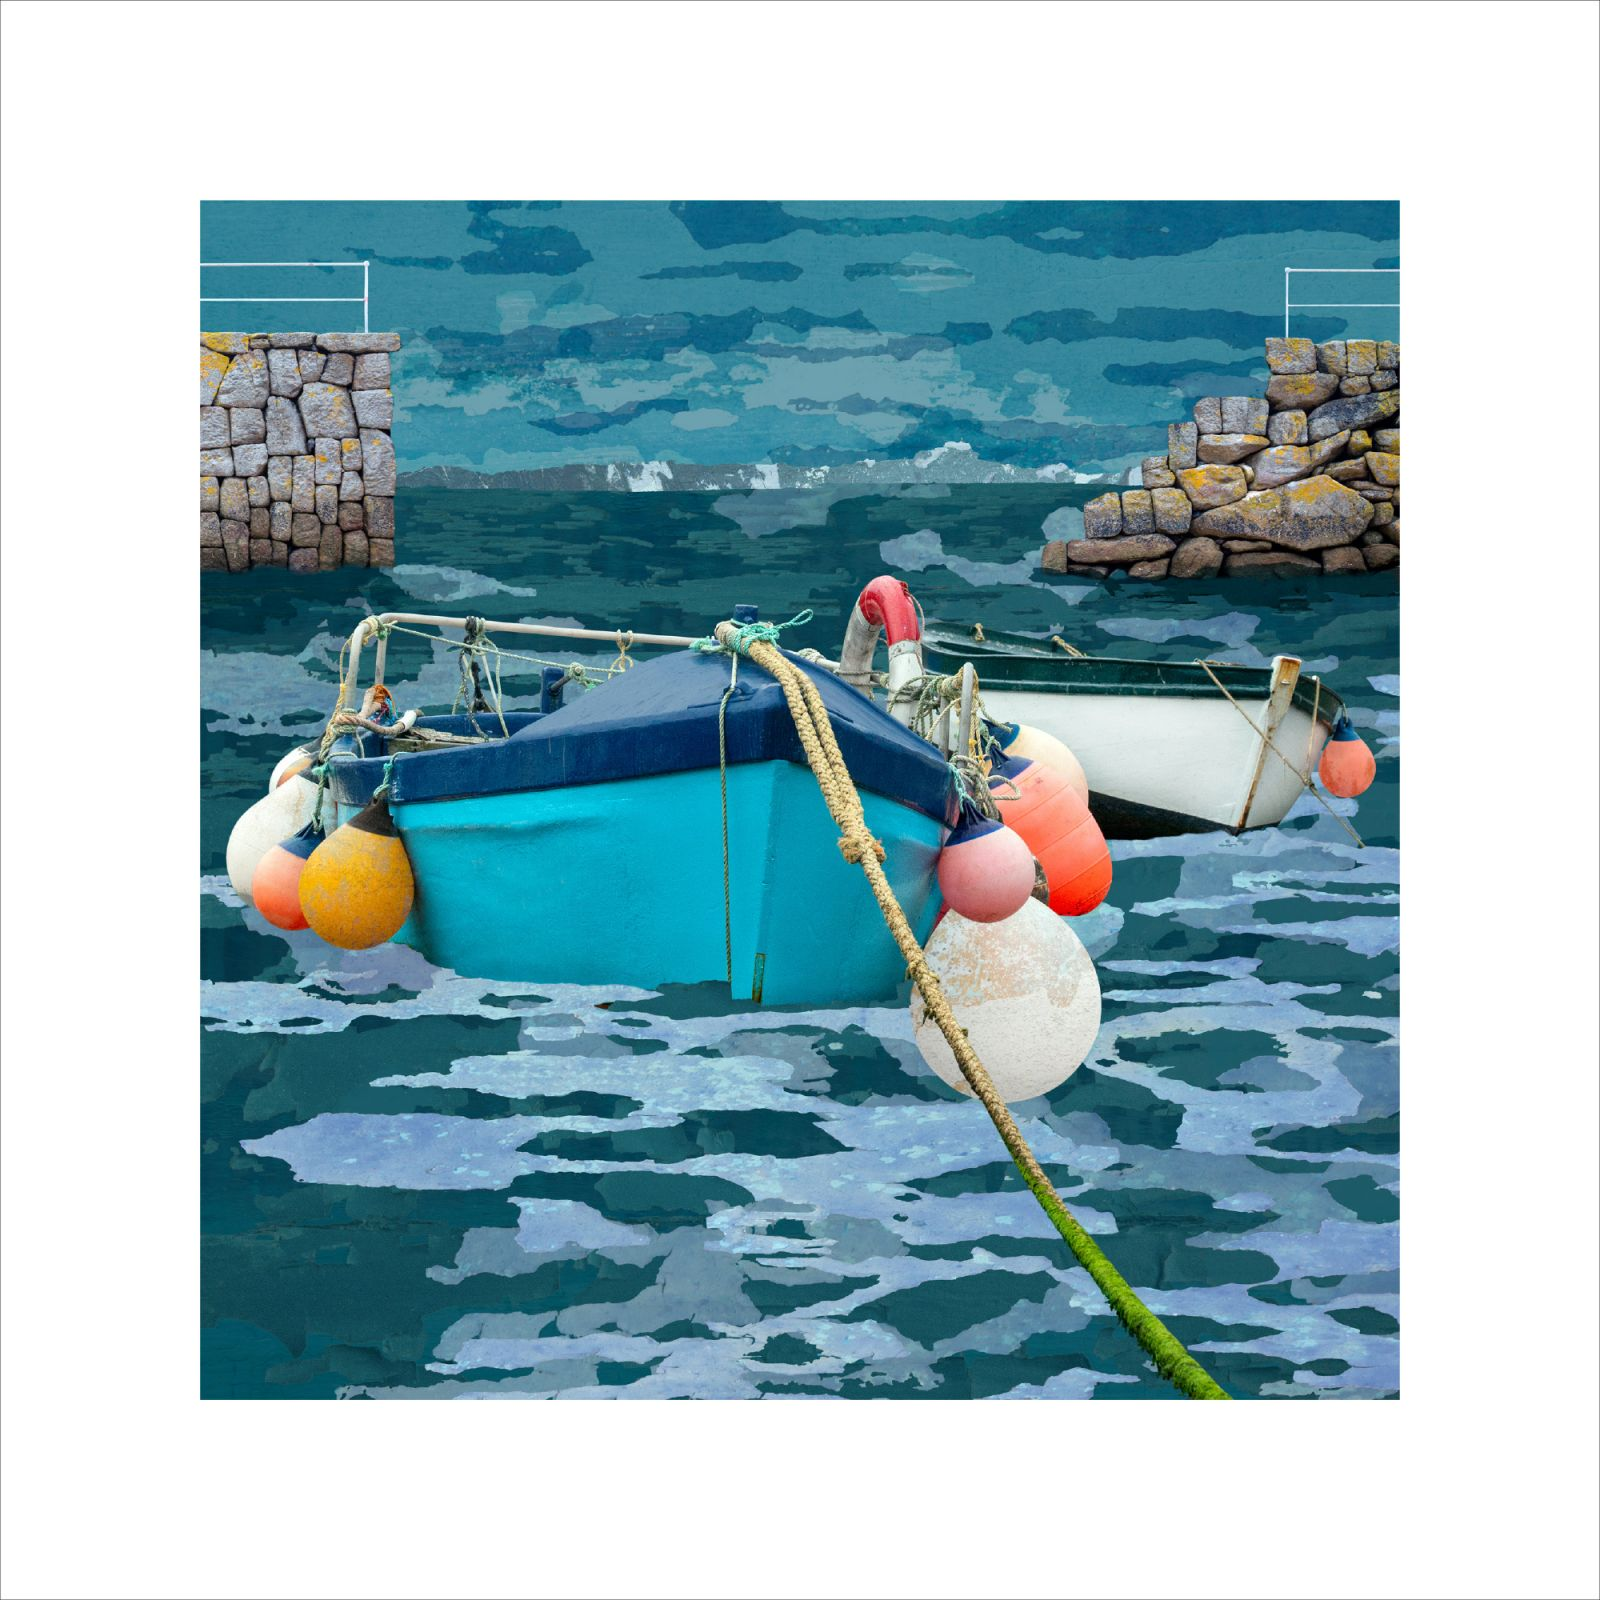 Claire Gill Artist, Seascape print, Limited Edition Print, hahnemuhle, Coastal Art, Mousehole Harbour, Mousehole, Cornwall, Cornish Coast, Buy Art, Art for interiors, boats, photomontage, fine art print